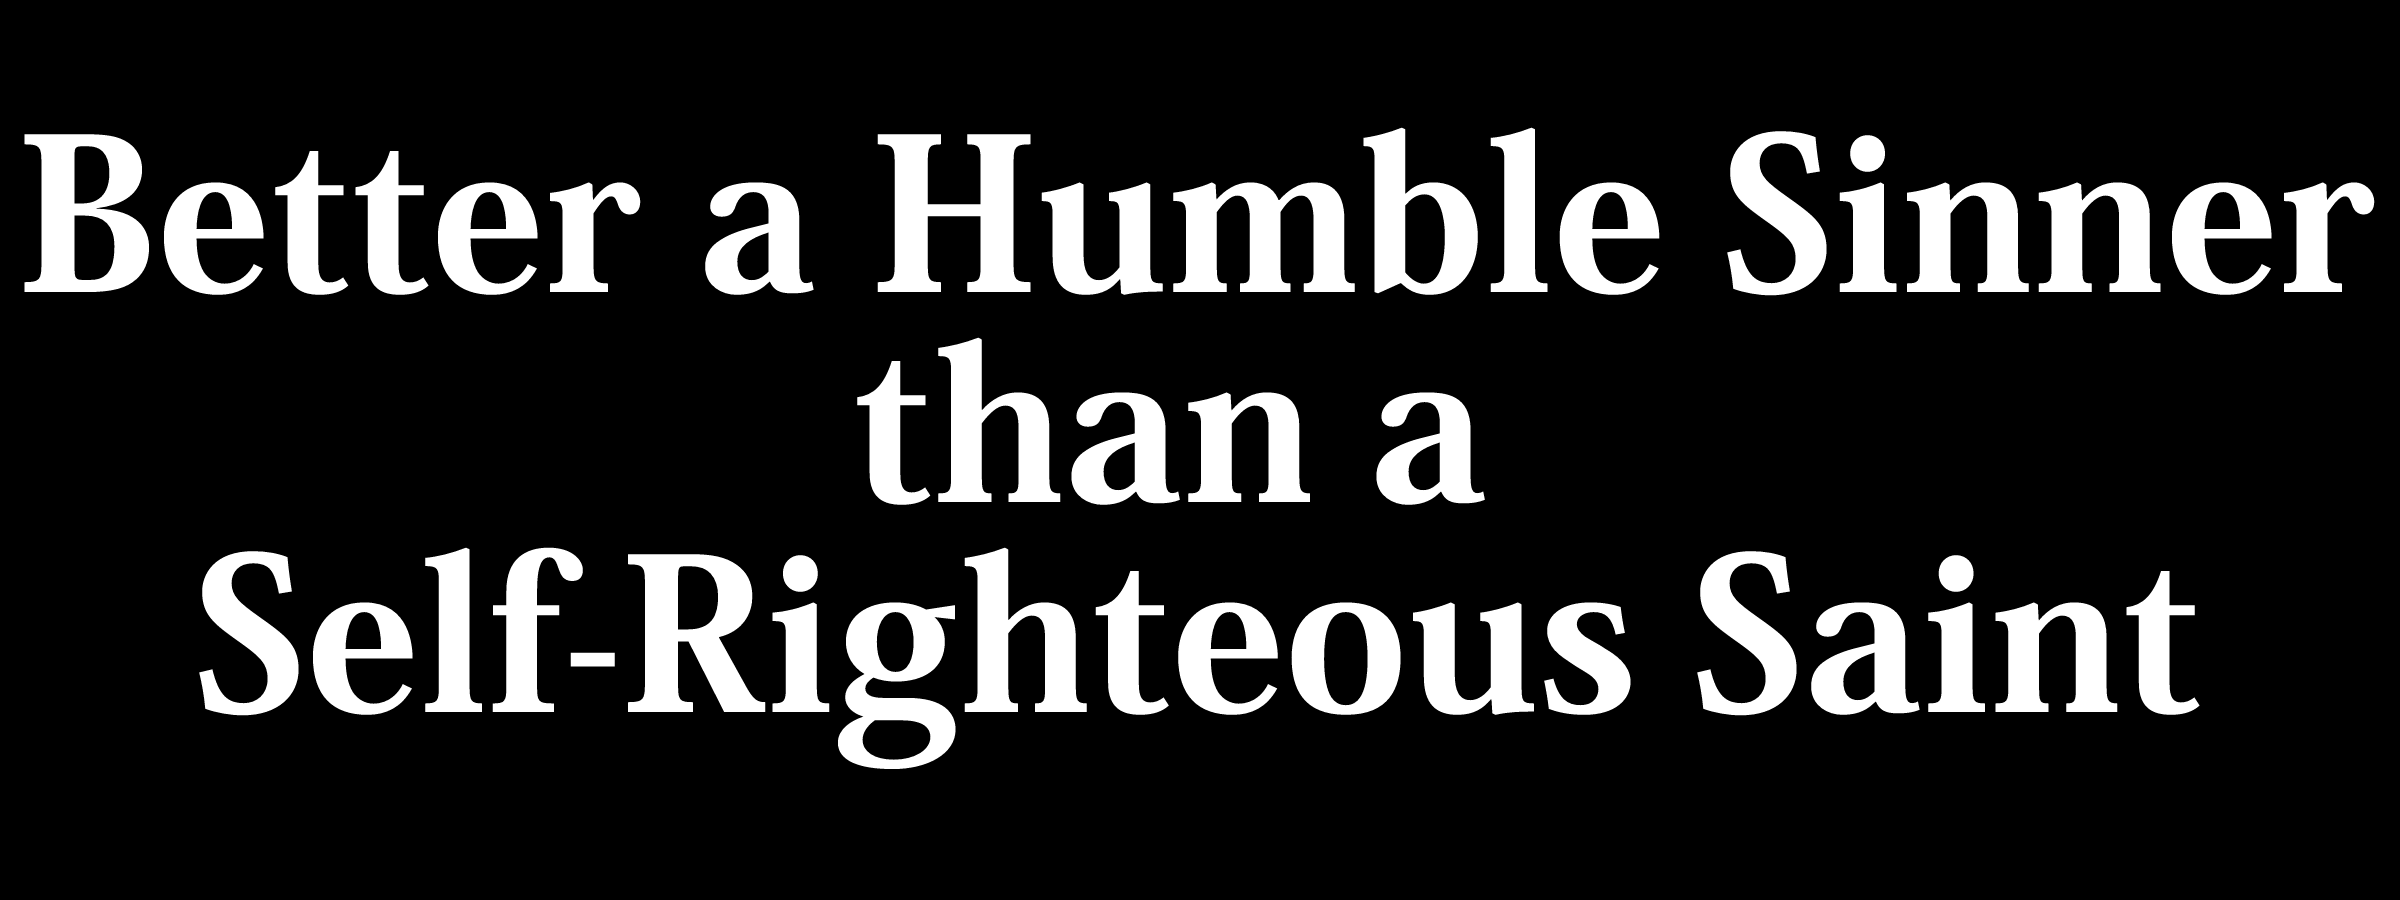 Quotes about Self Righteousness (93 quotes)